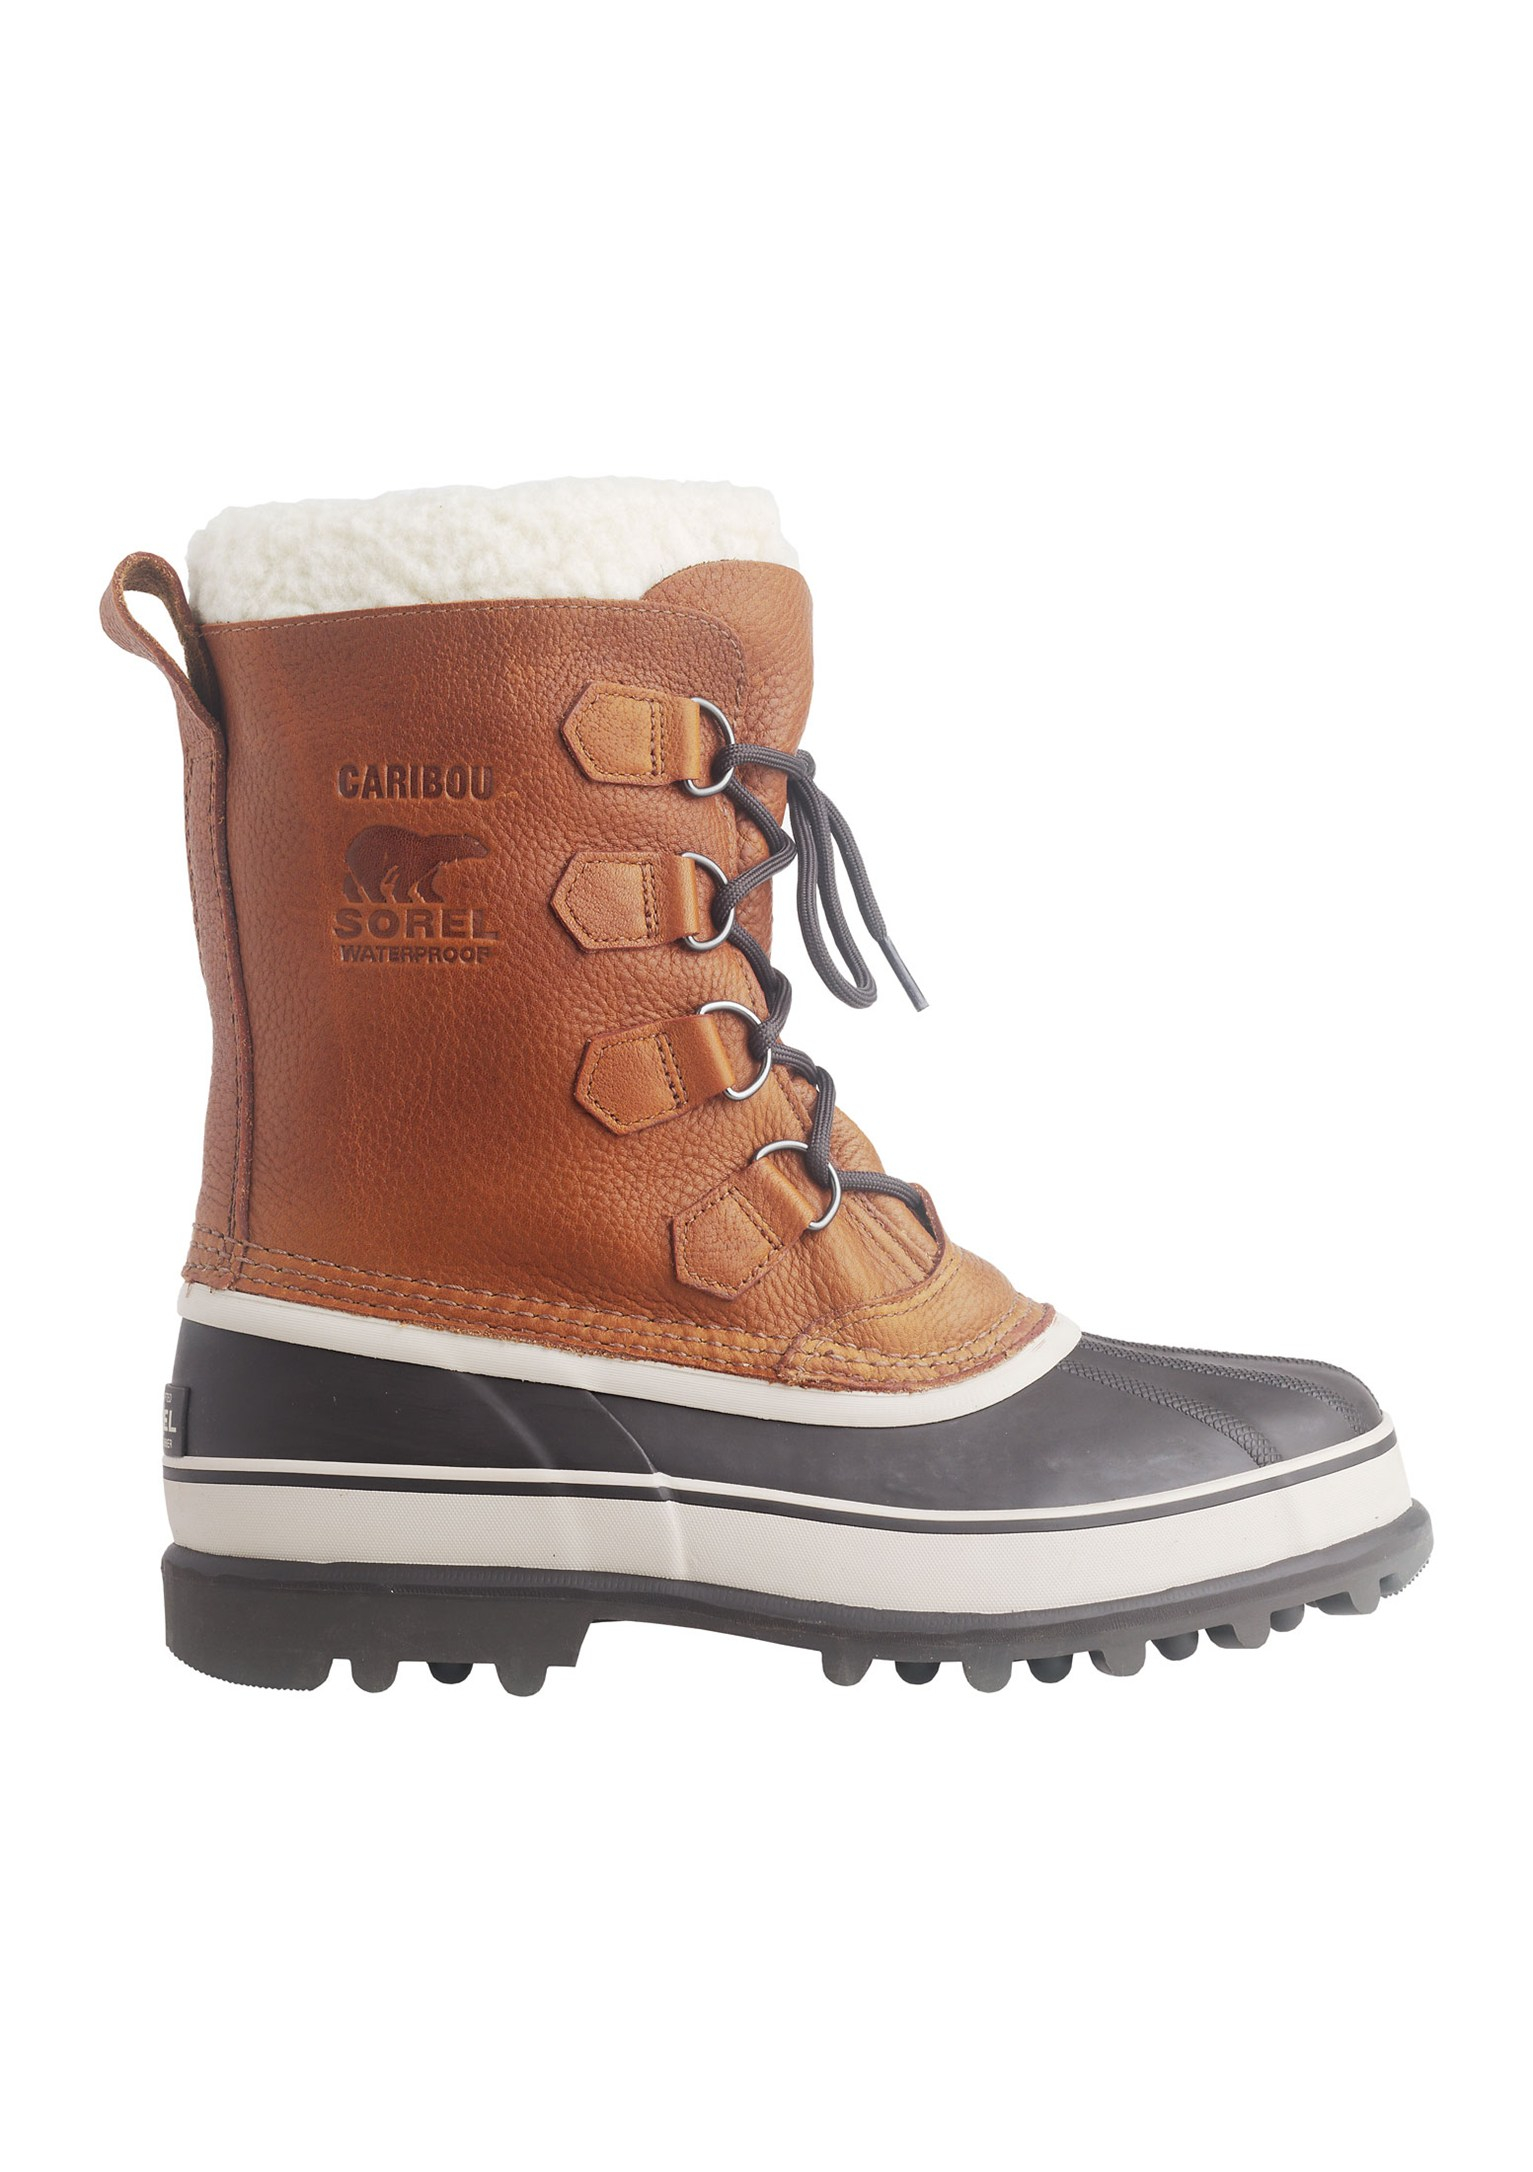 Sorel Women's Snow Boots Sale | Homewood Mountain Ski Resort